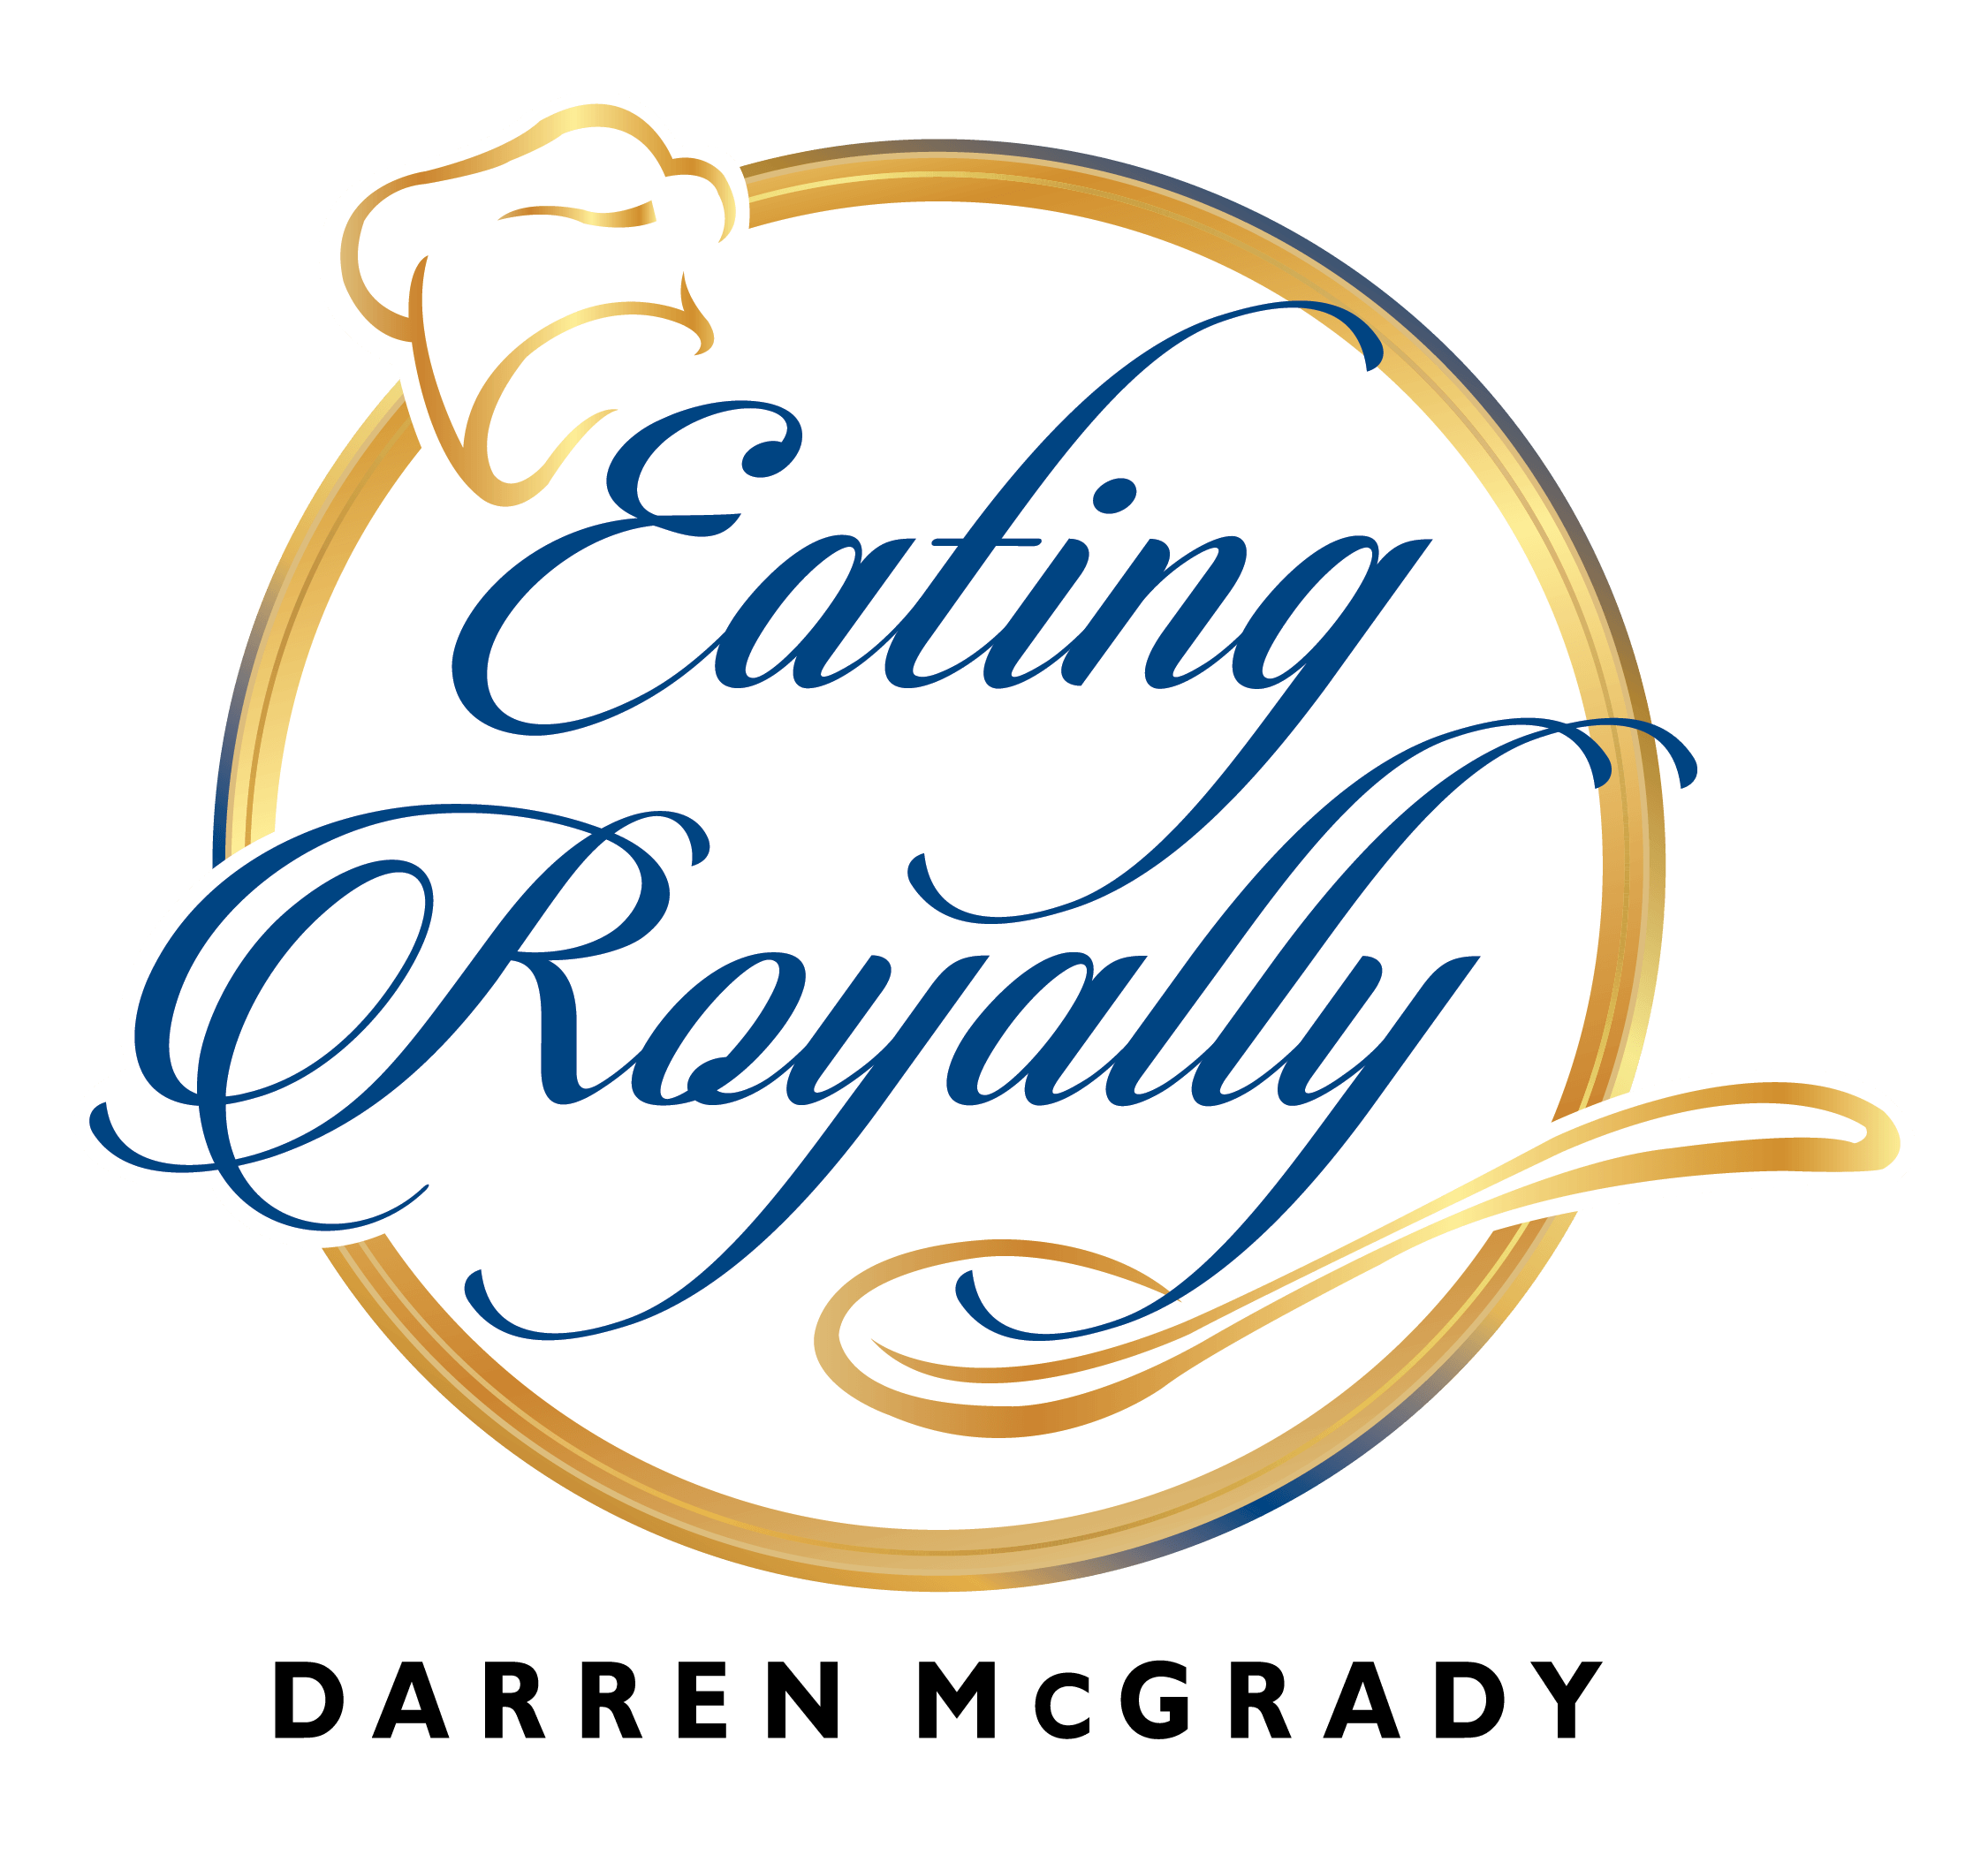 Dallas caterer | Corporate & Private Catering